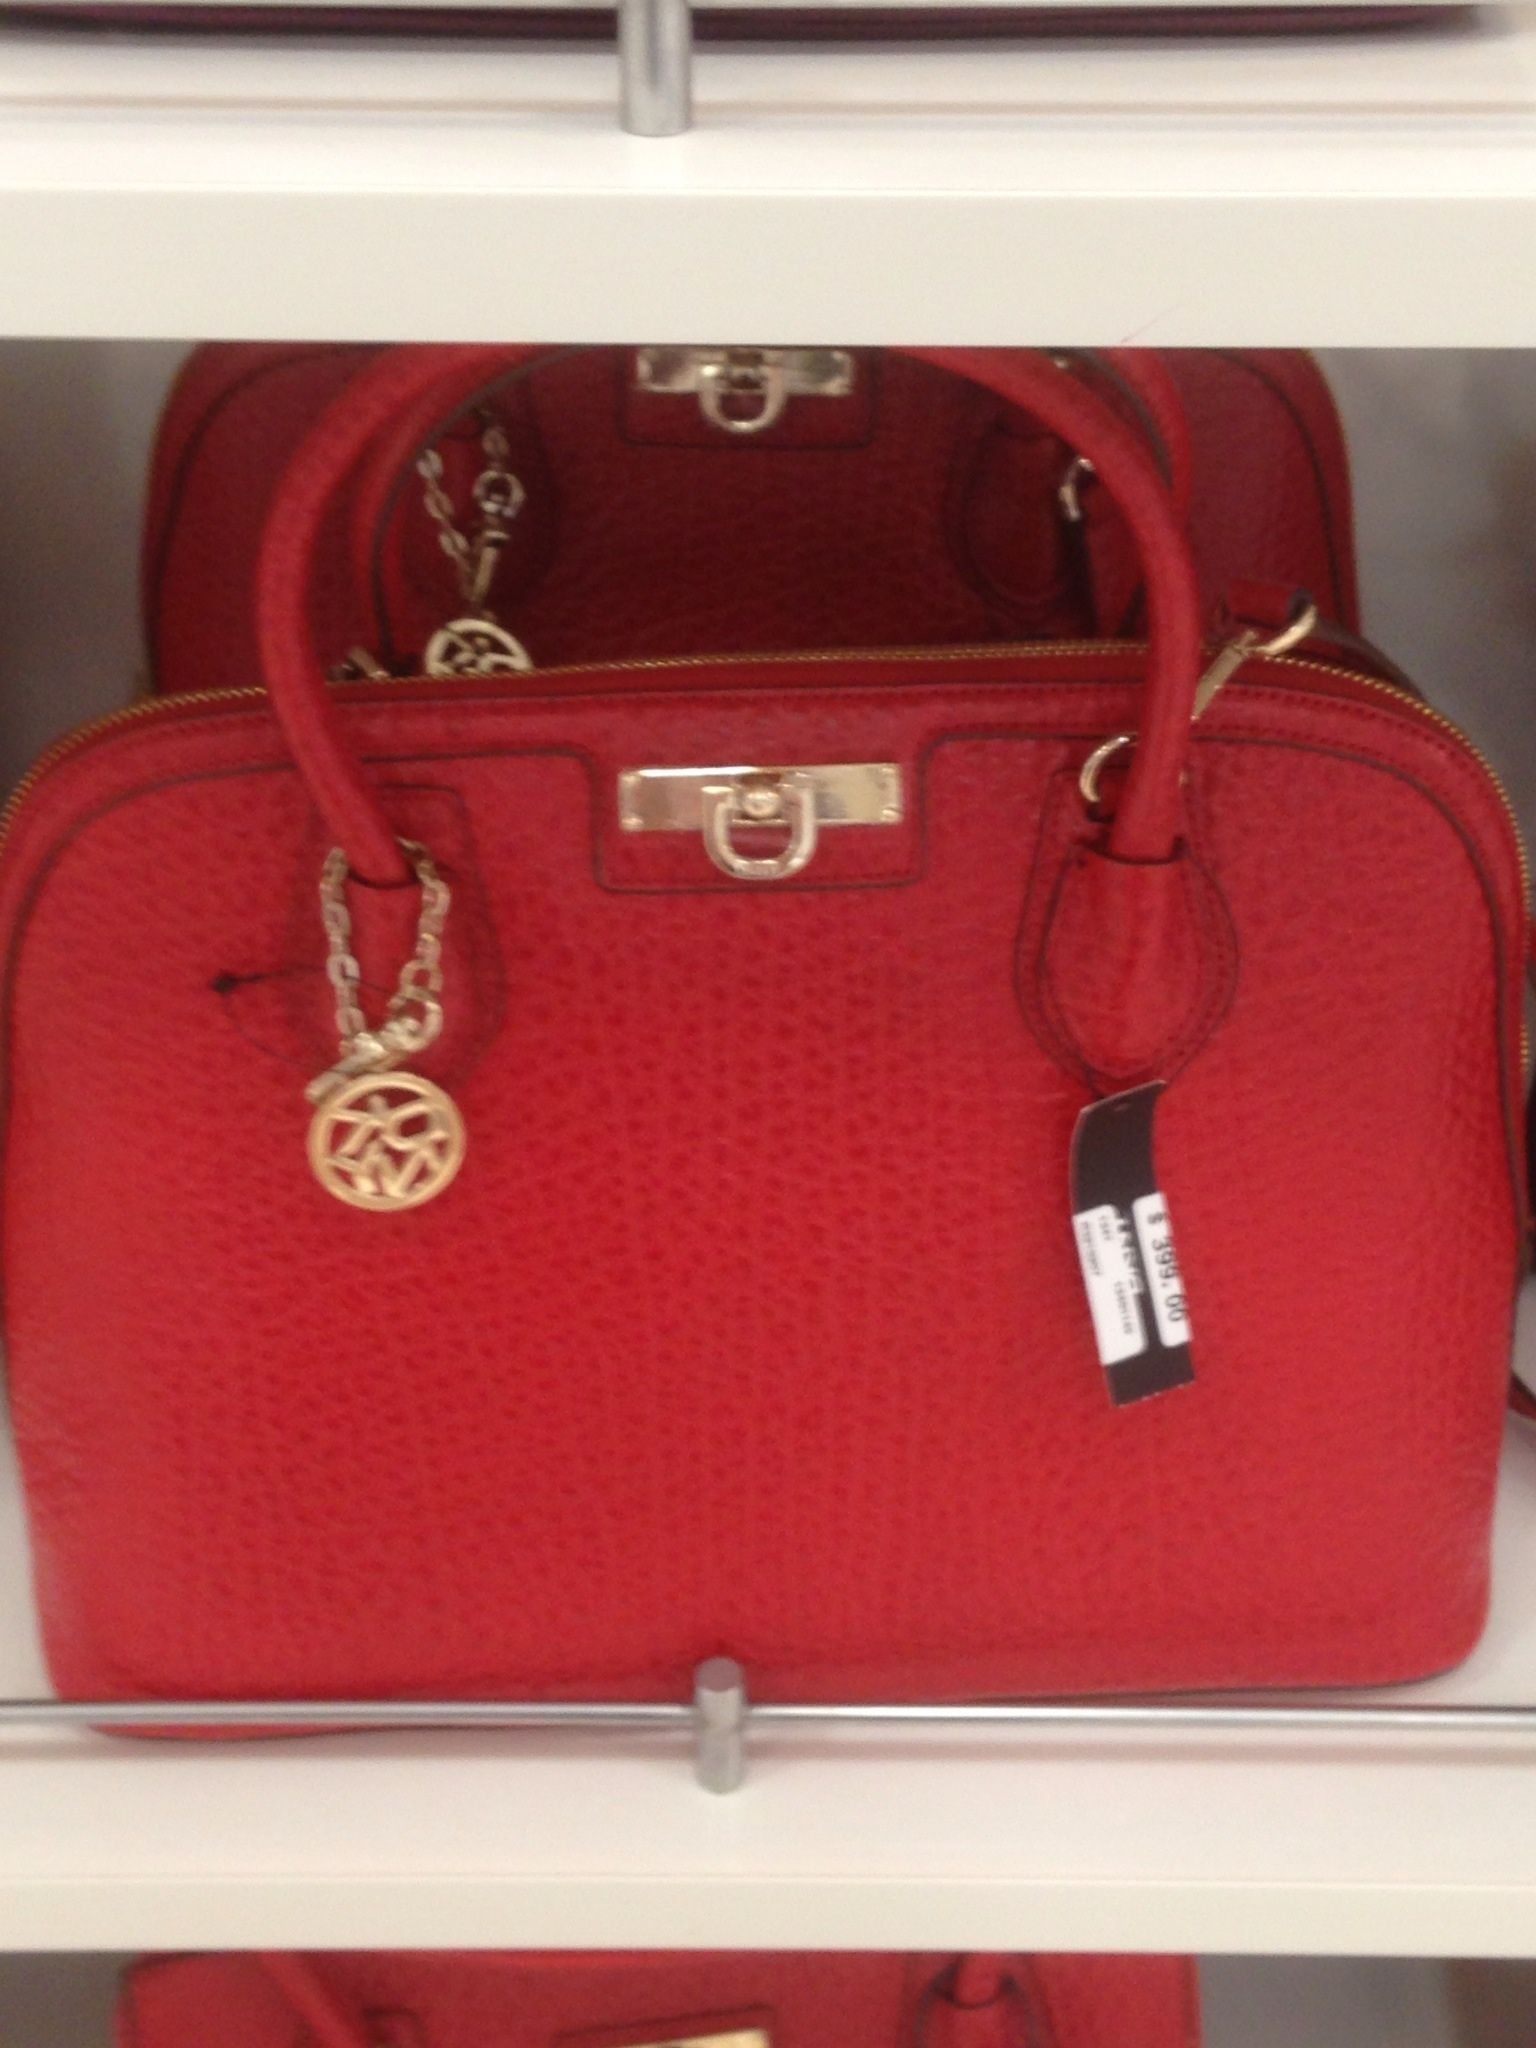 Linda, DKNY red bag, $399.00 | Pic Your Prize | Pinterest ...